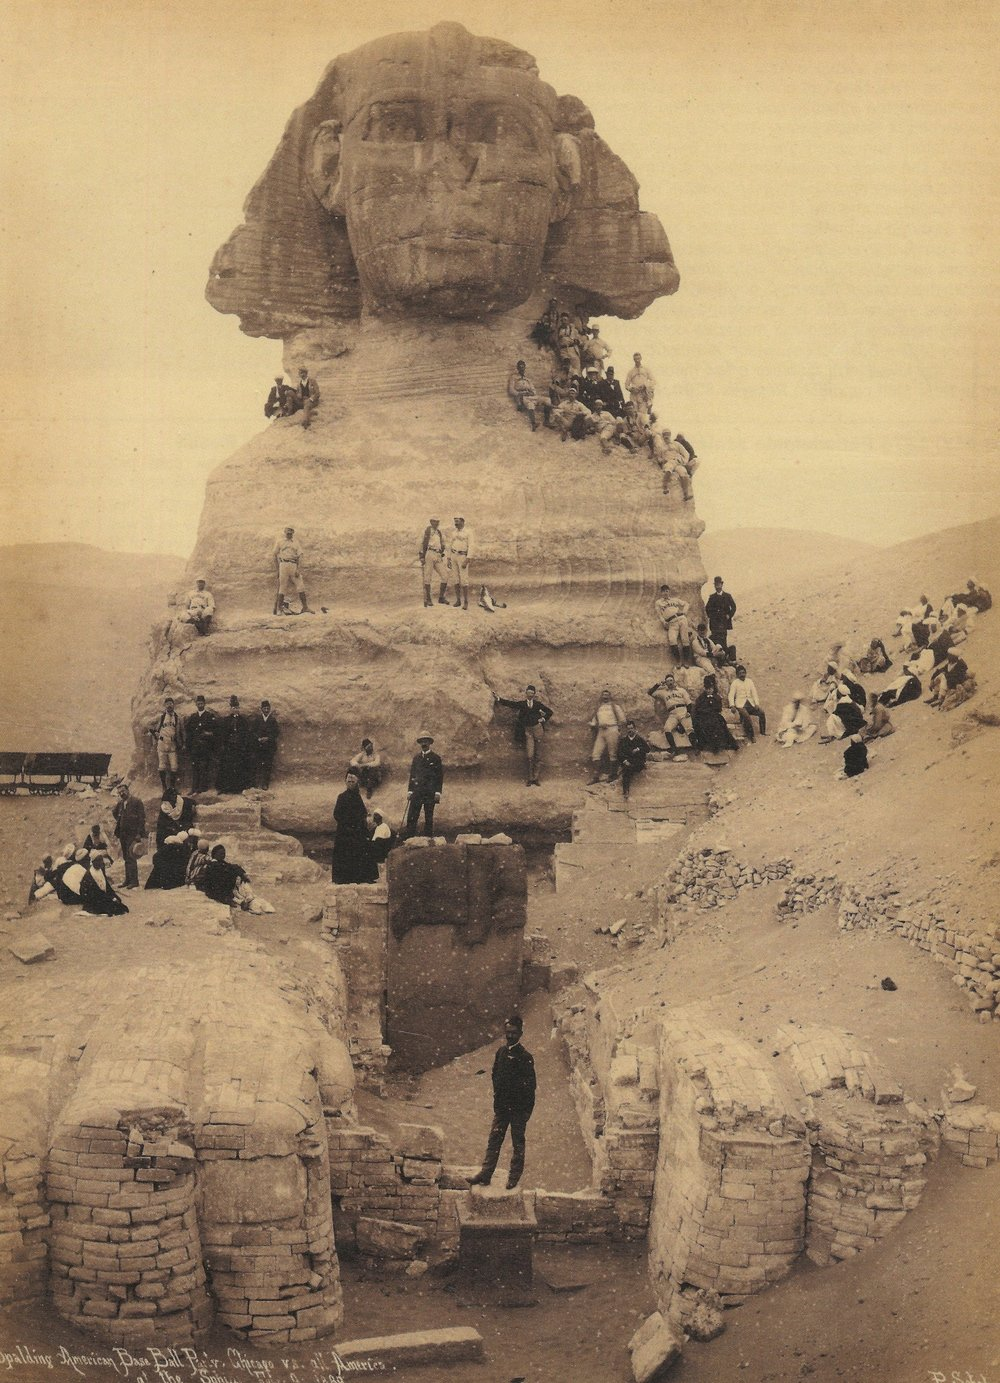 The All-Americas and Chicago White Stockings posed atop the Great Sphinx in 1889